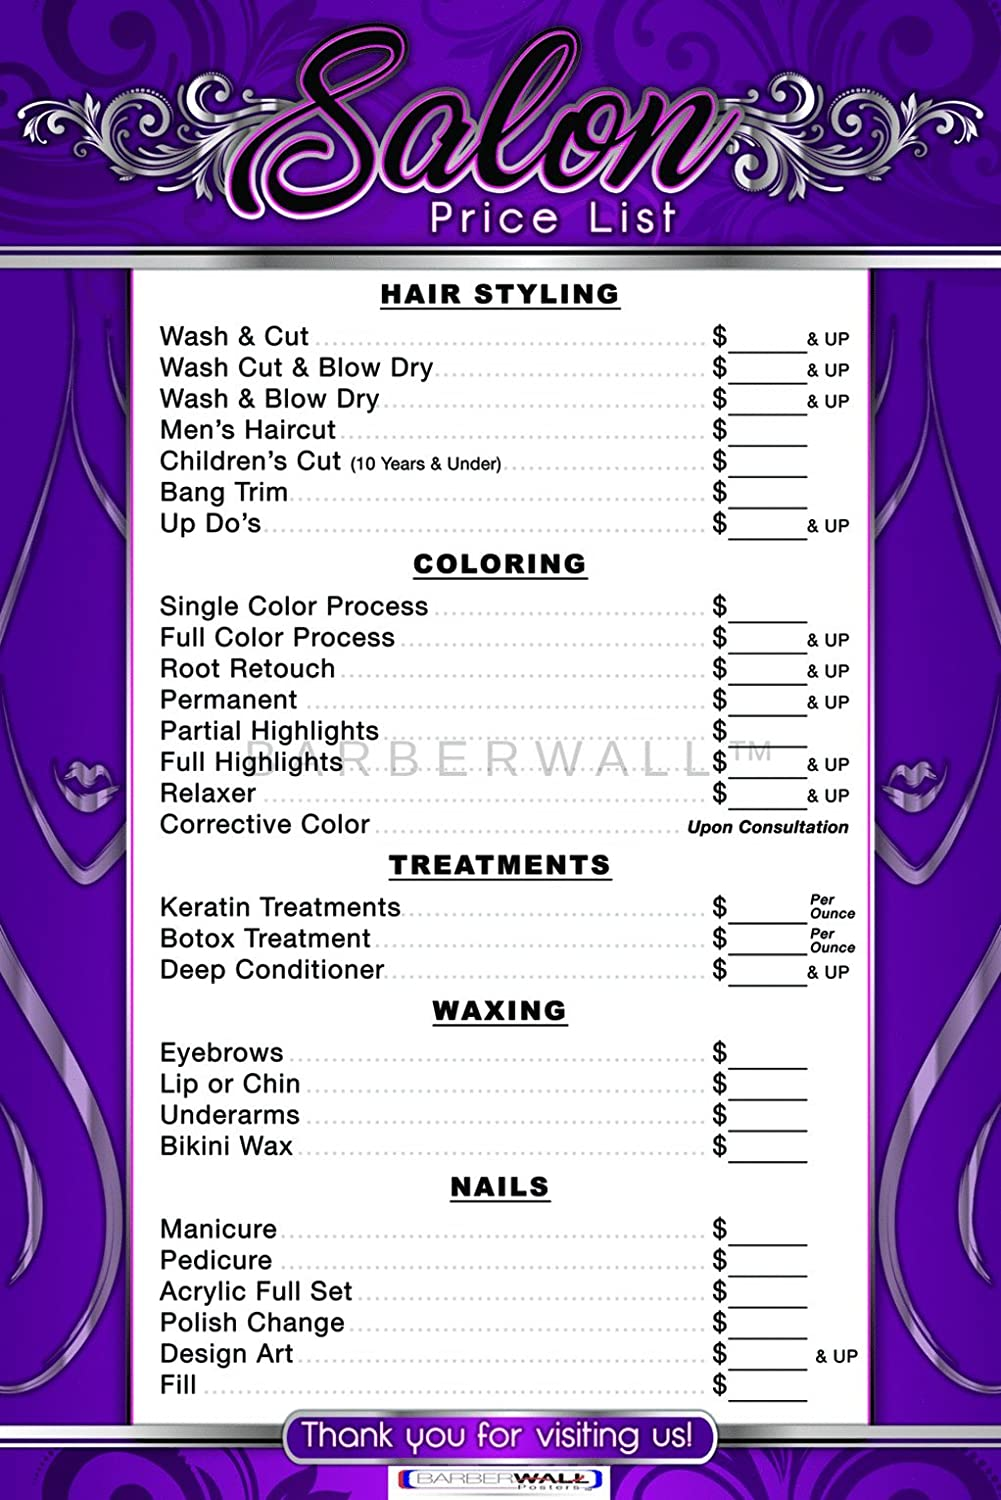 Barberwall® Price List For Beauty Salon By Salon Poster - Dimension 24 X 36 inches Laminated, You will love to have this beauty salon poster in your ...